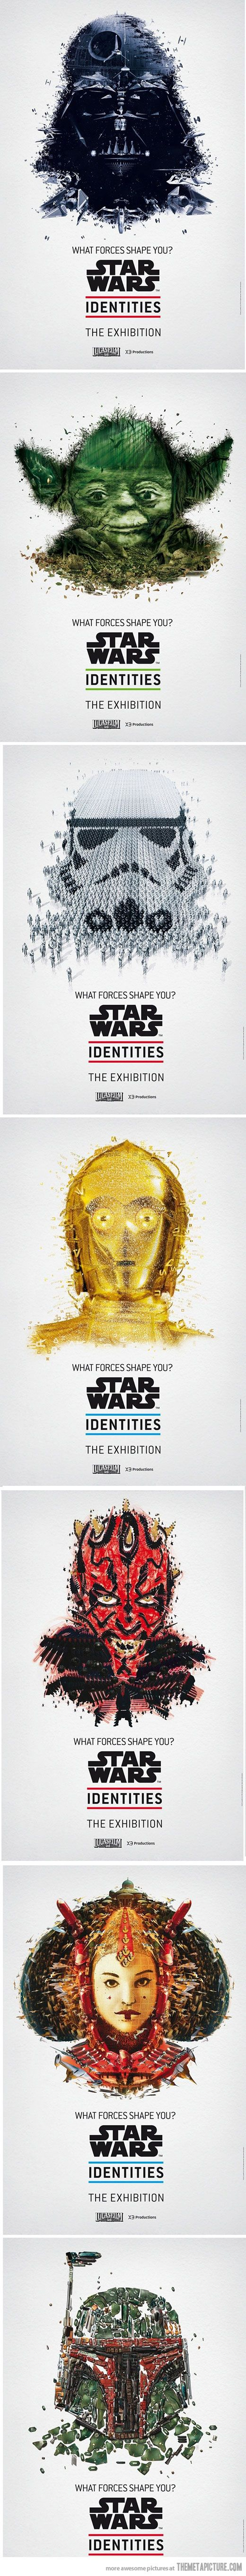 funny-Star-Wars-posters-art